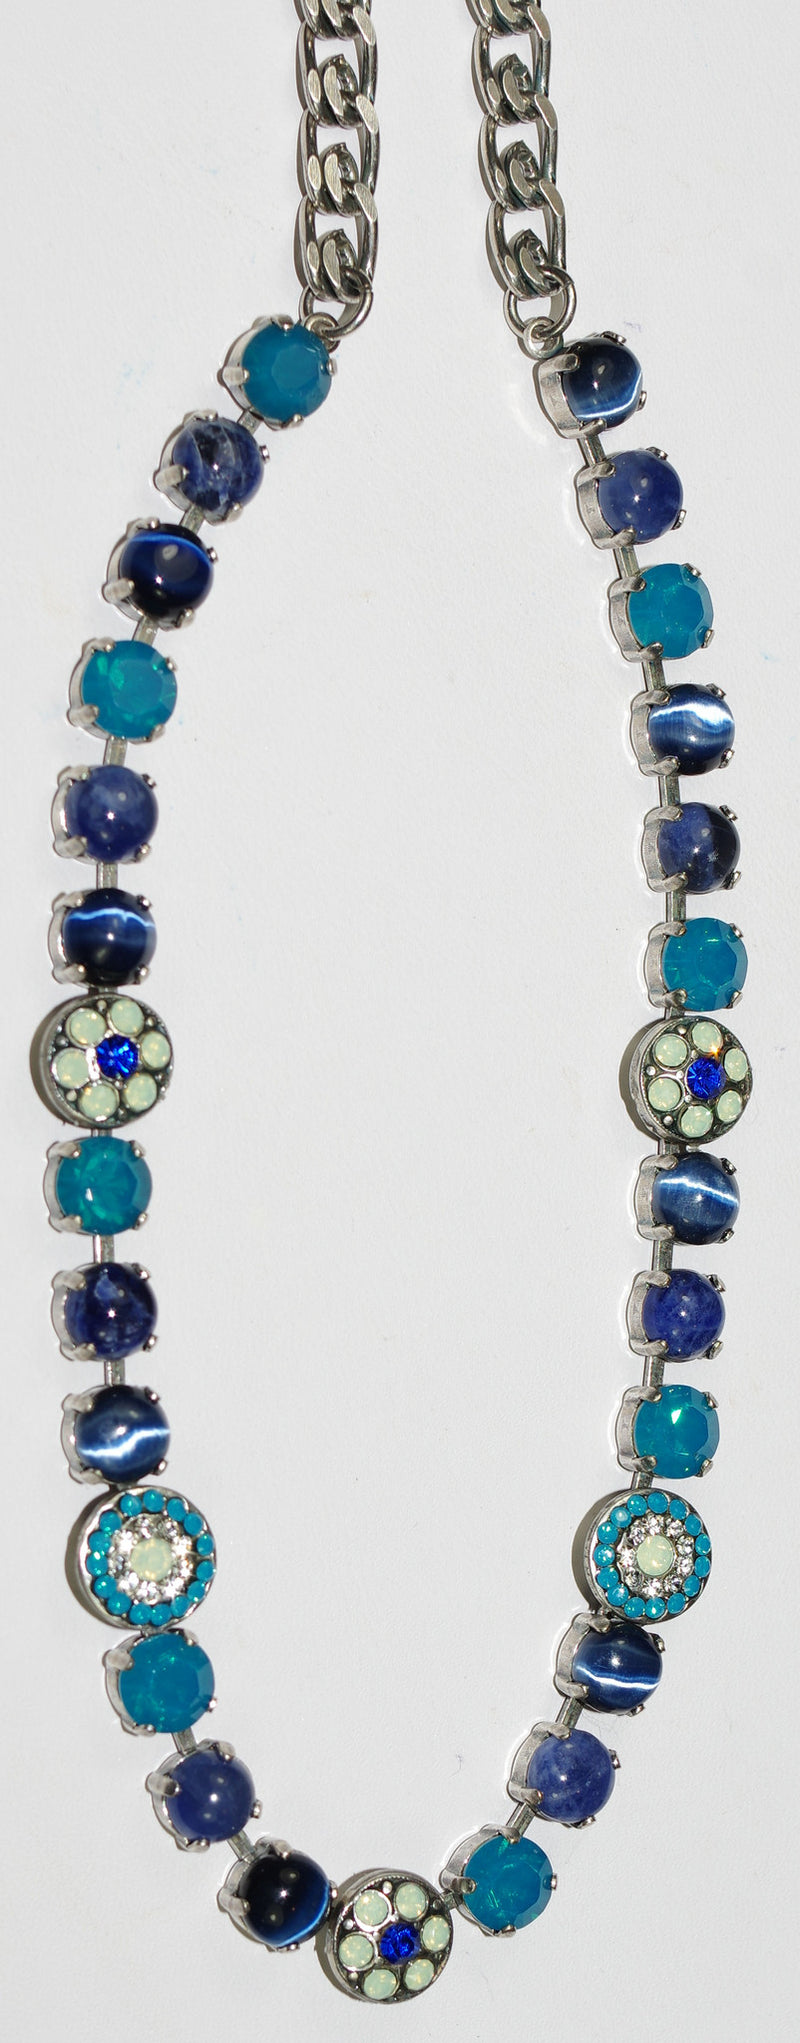 "MARIANA NECKLACE ZHANG: pacific opal, blue, navy, clear stones in silver setting, 17"" adjustable chain"